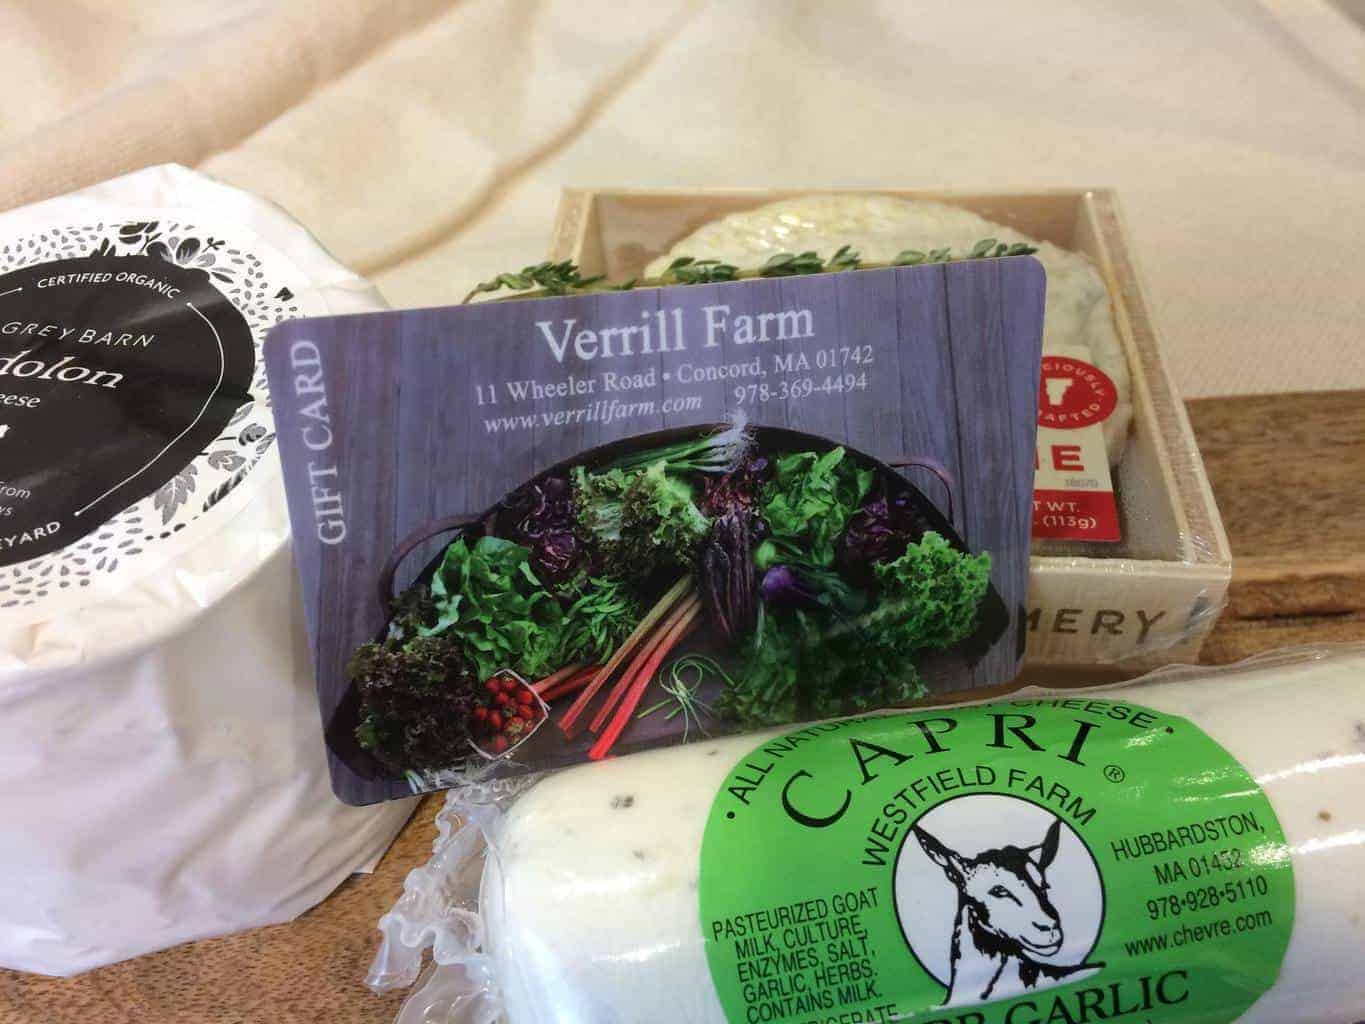 Verrill Farm Gift Cards